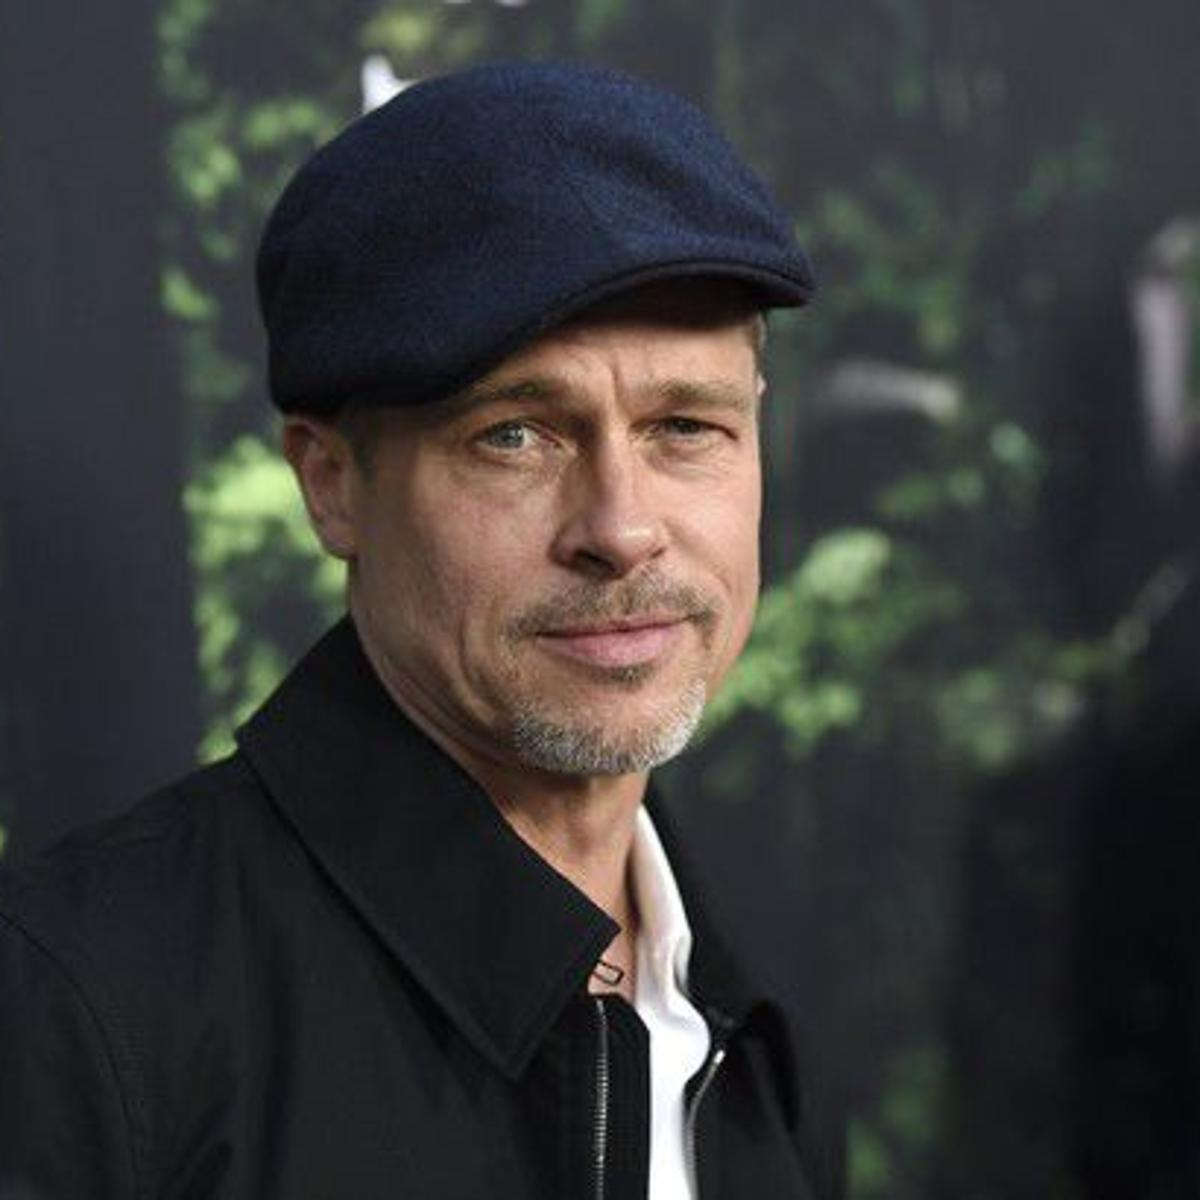 Brad Pitt says 'Interview with the Vampire' was a 'miserable